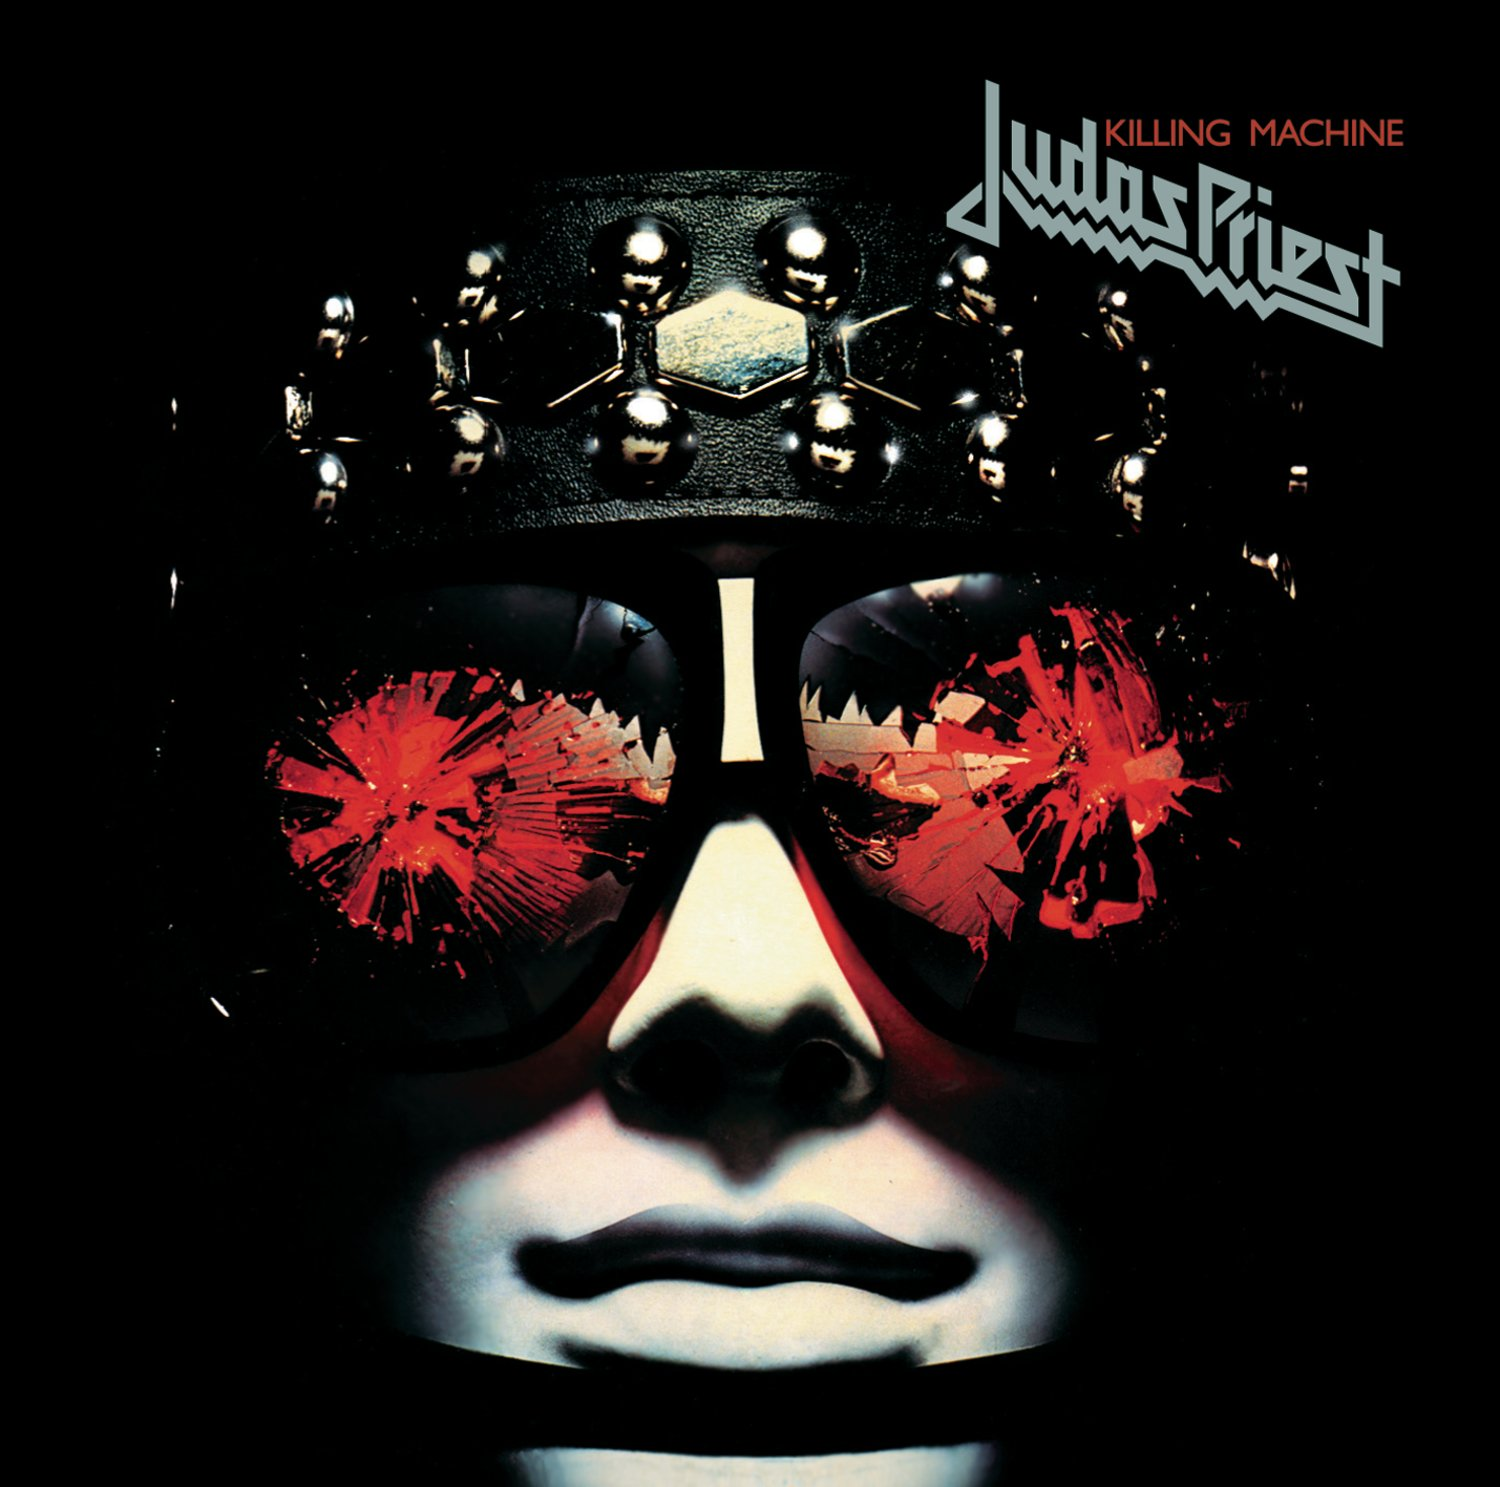 JUDAS PRIEST - Killing Machine - Amazon.com Music